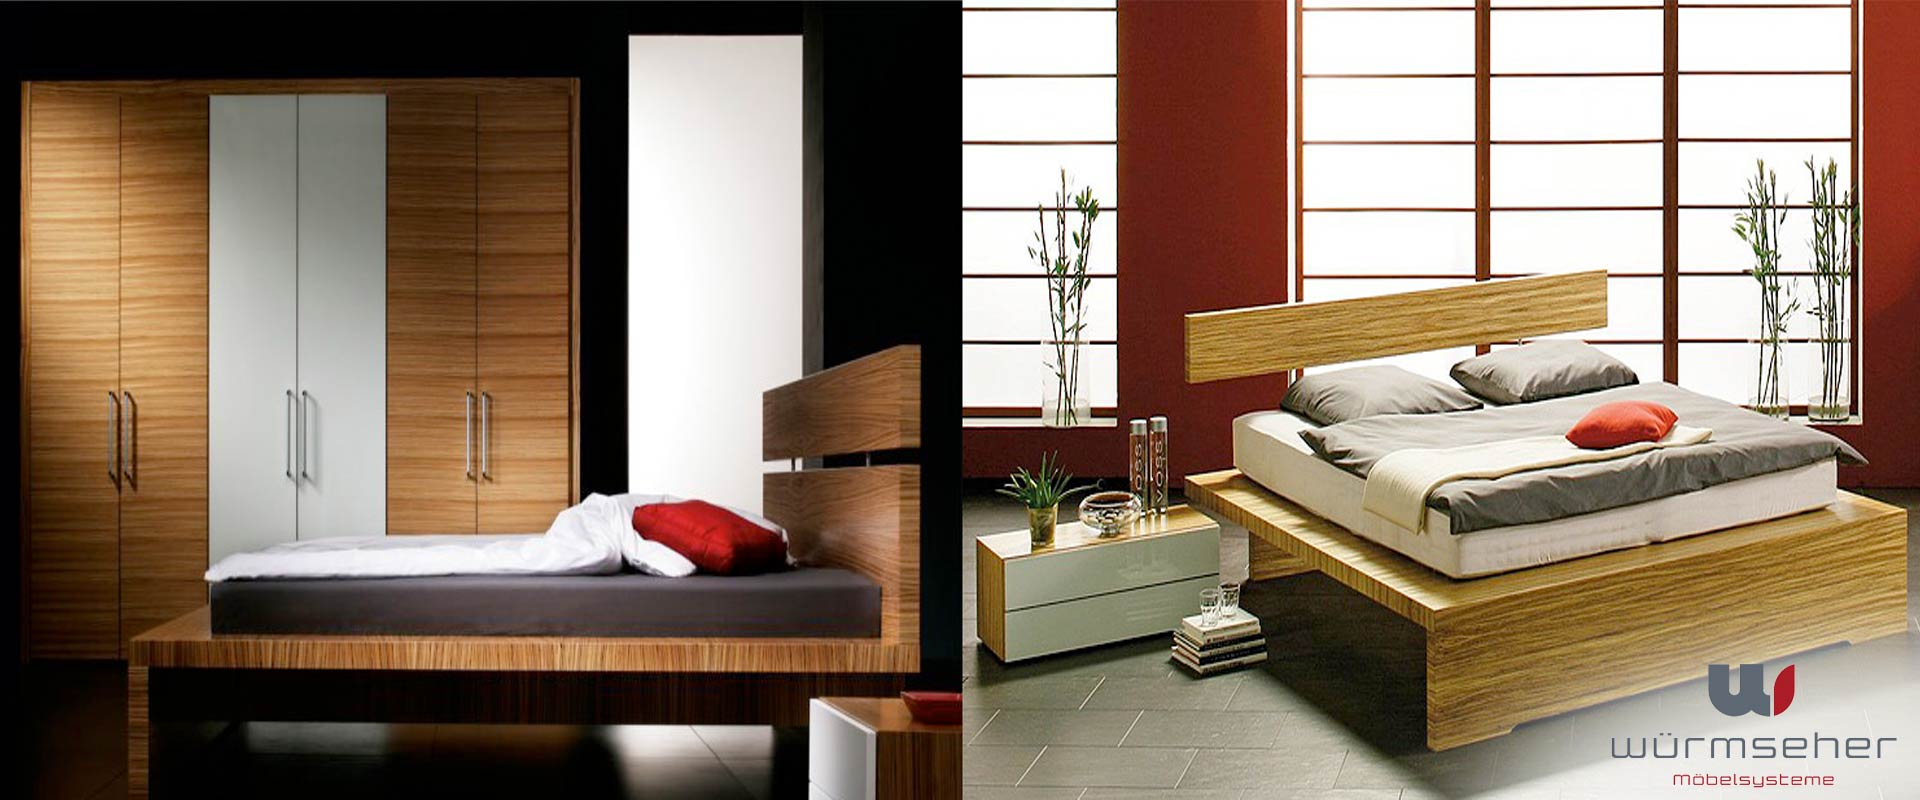 domeyer m bel und k chen g nstige m bel und k chen. Black Bedroom Furniture Sets. Home Design Ideas